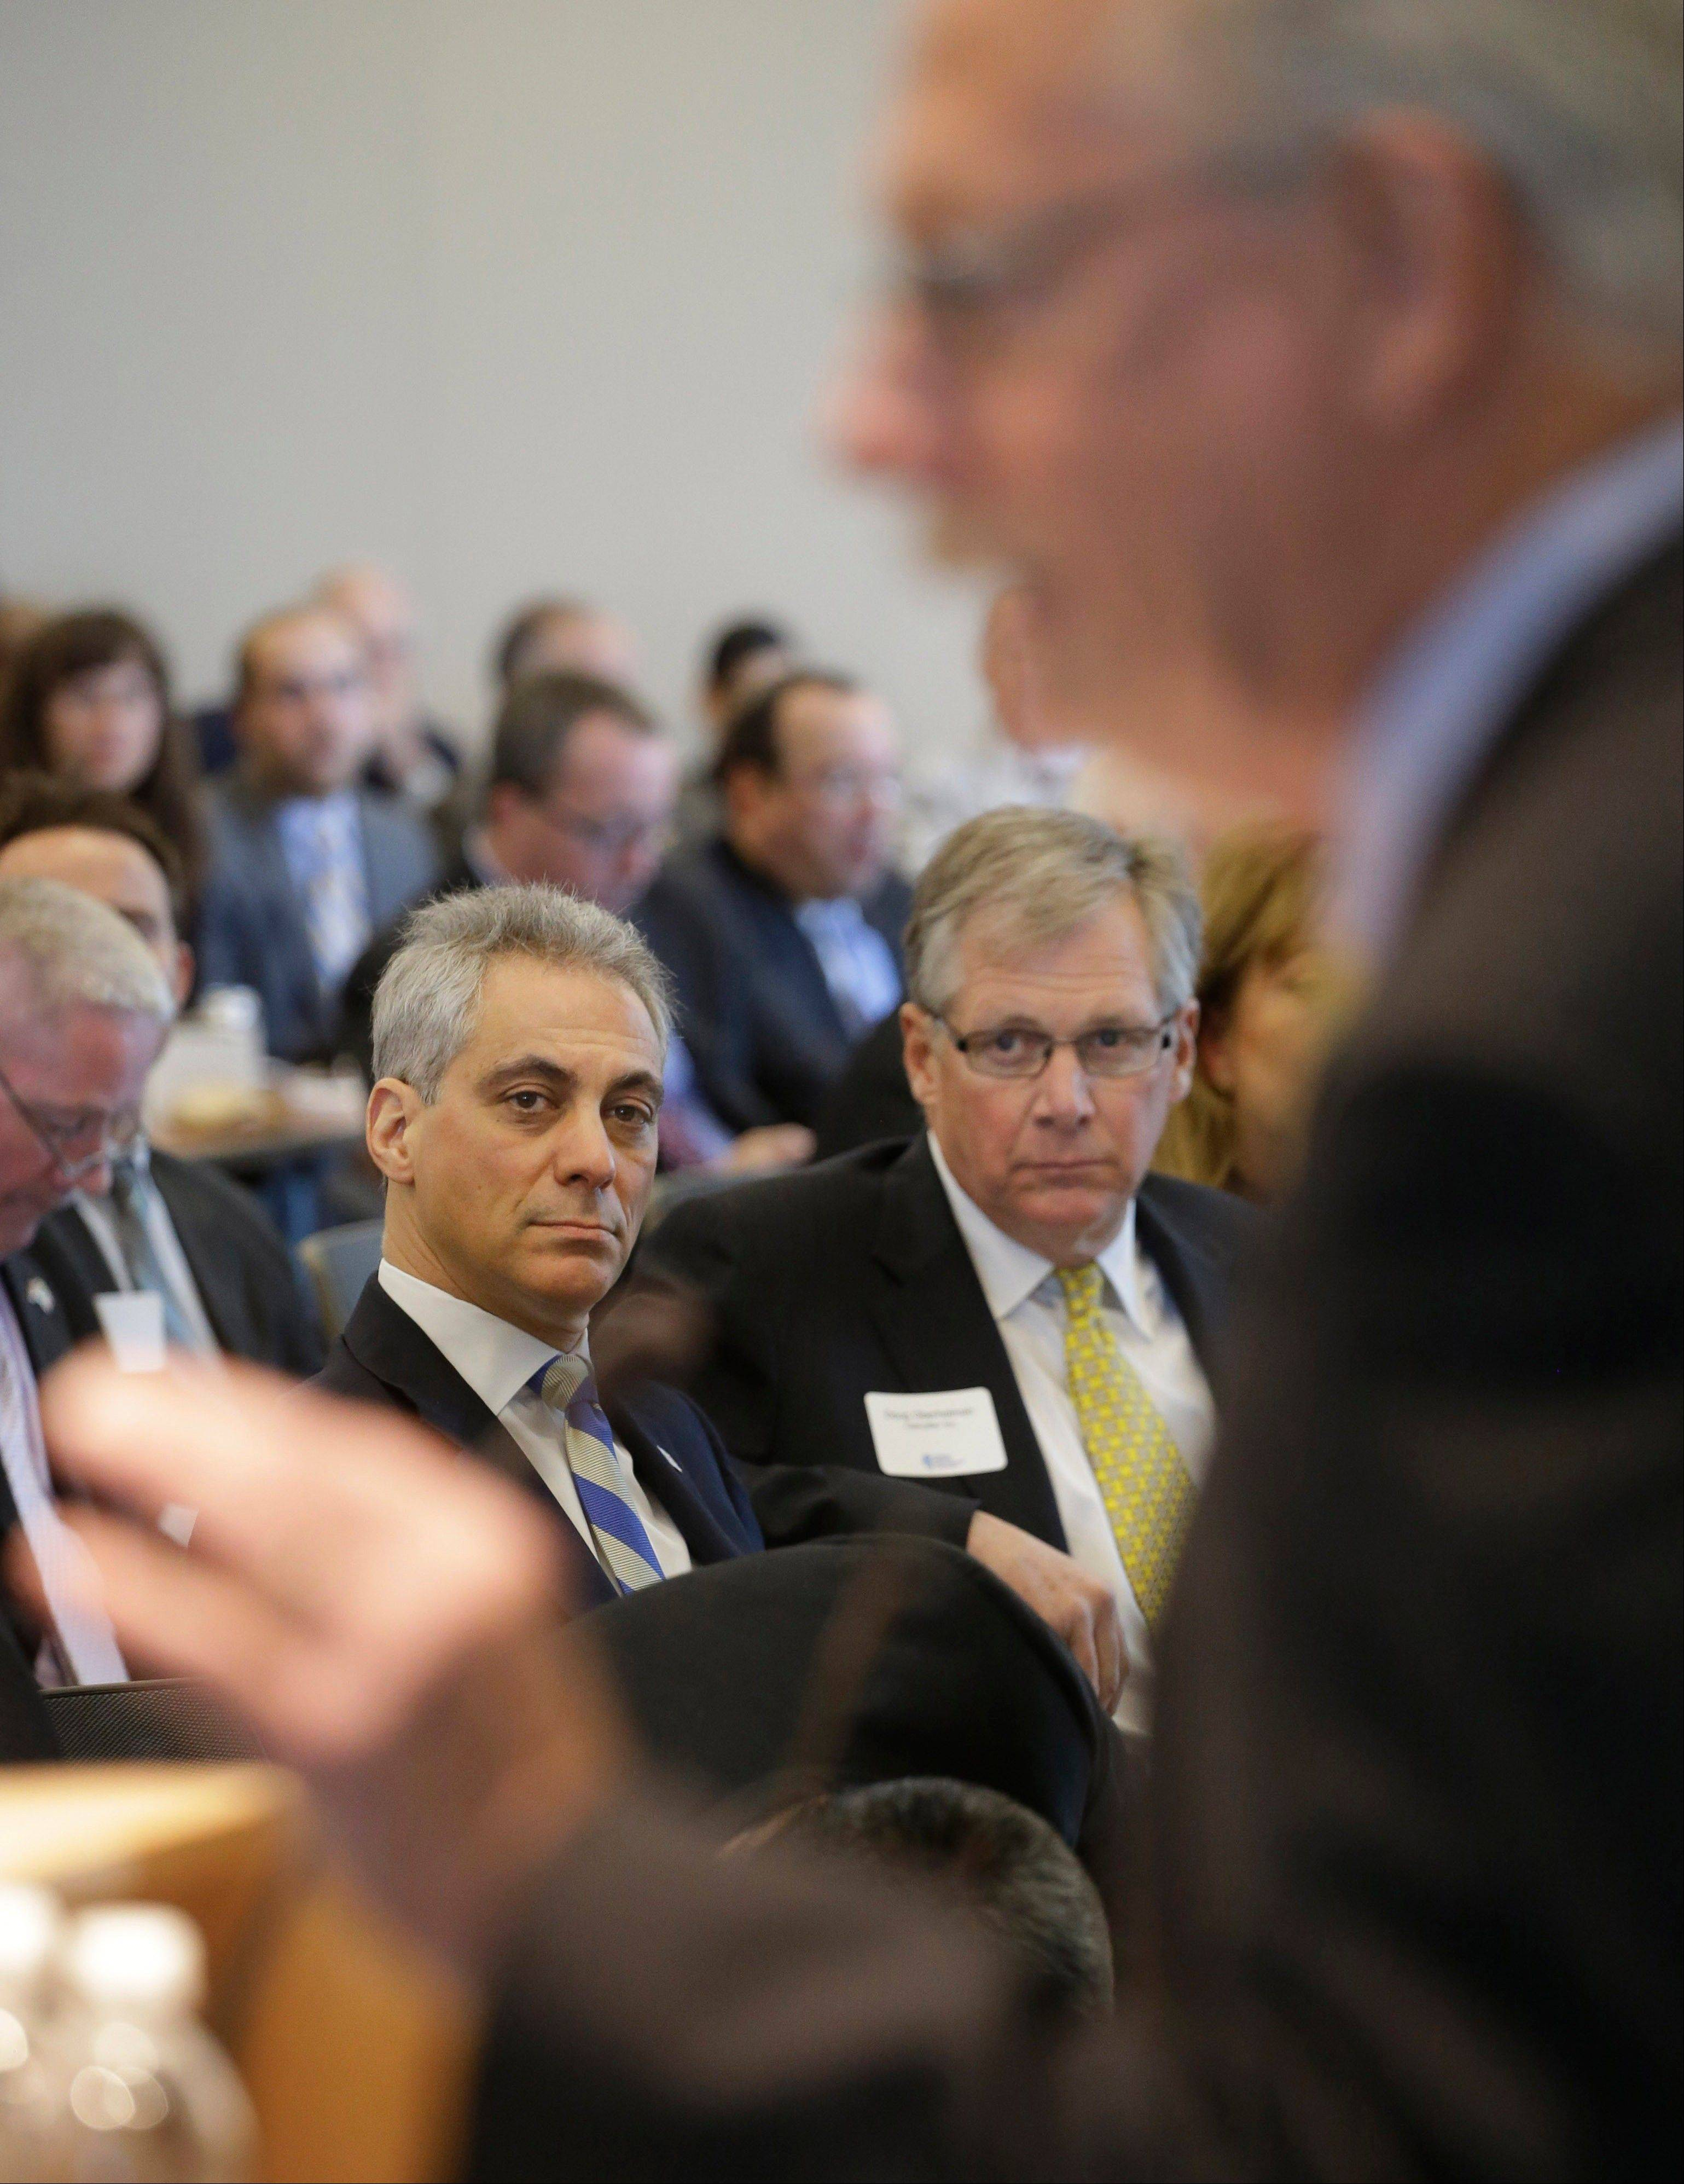 Chicago Mayor Rahm Emanuel, left, and Caterpillar CEO Doug Oberhelman, center, listen as Pat Magoon, CEO of Lurie Children's Hospital speaks at an event for The Illinois Business Immigration Coalition on Monday.